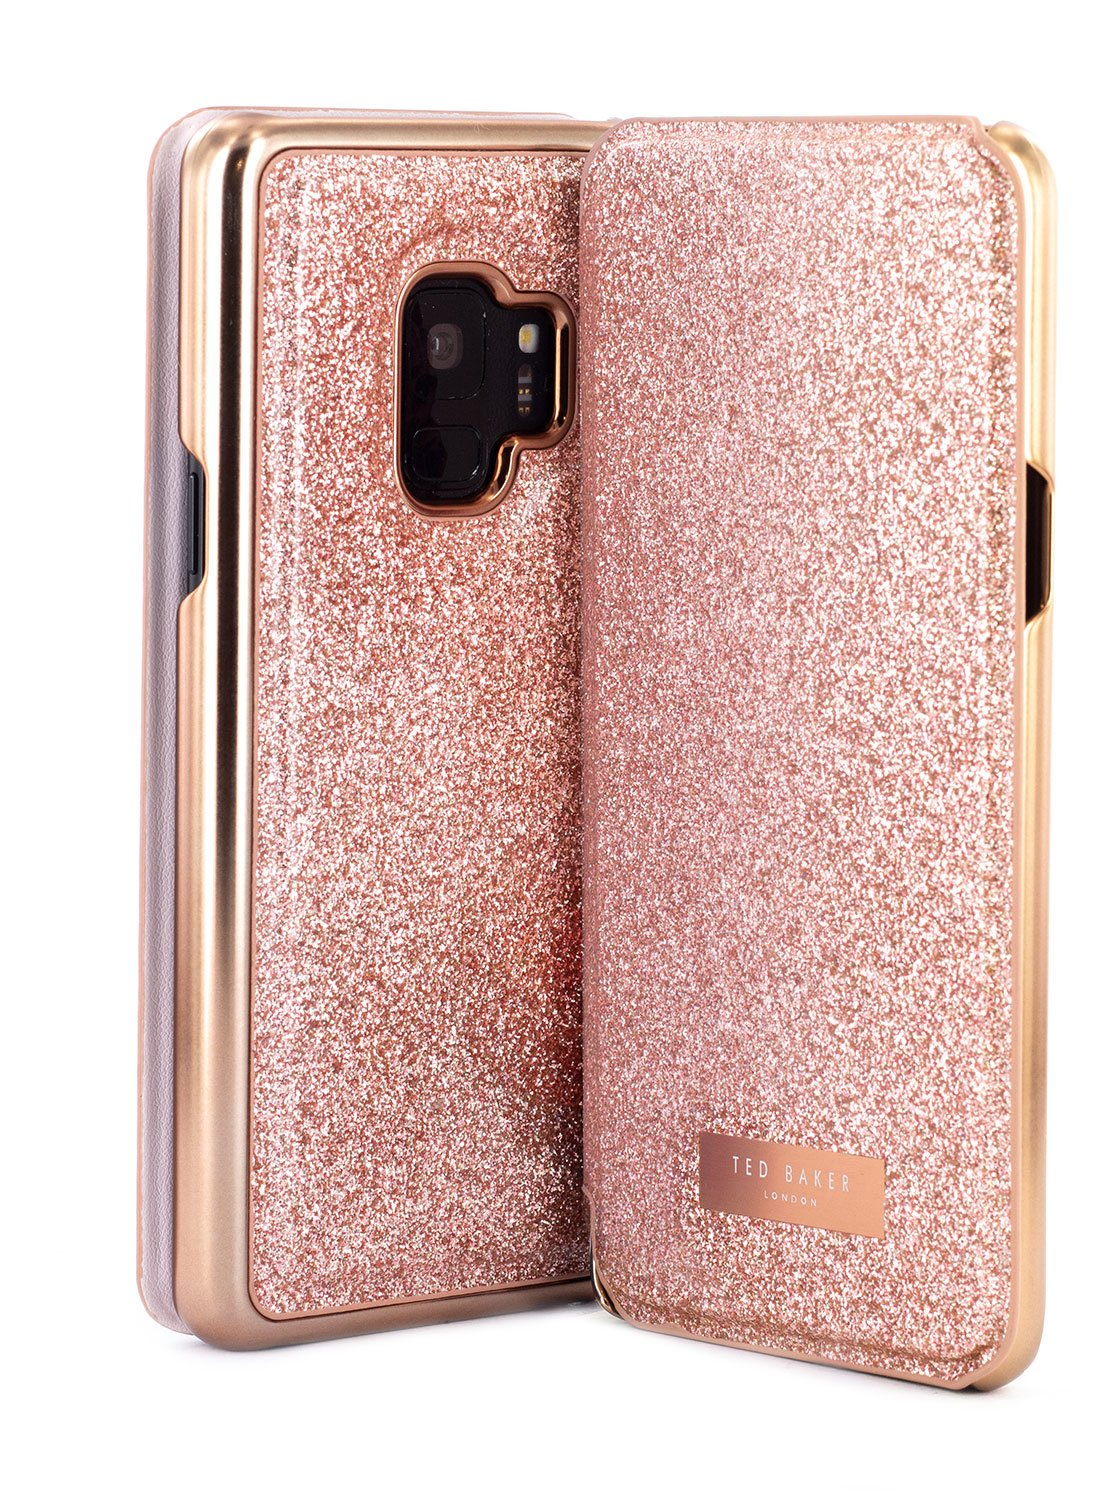 Front and back image of the Ted Baker Samsung Galaxy S9 phone case in Rose Gold